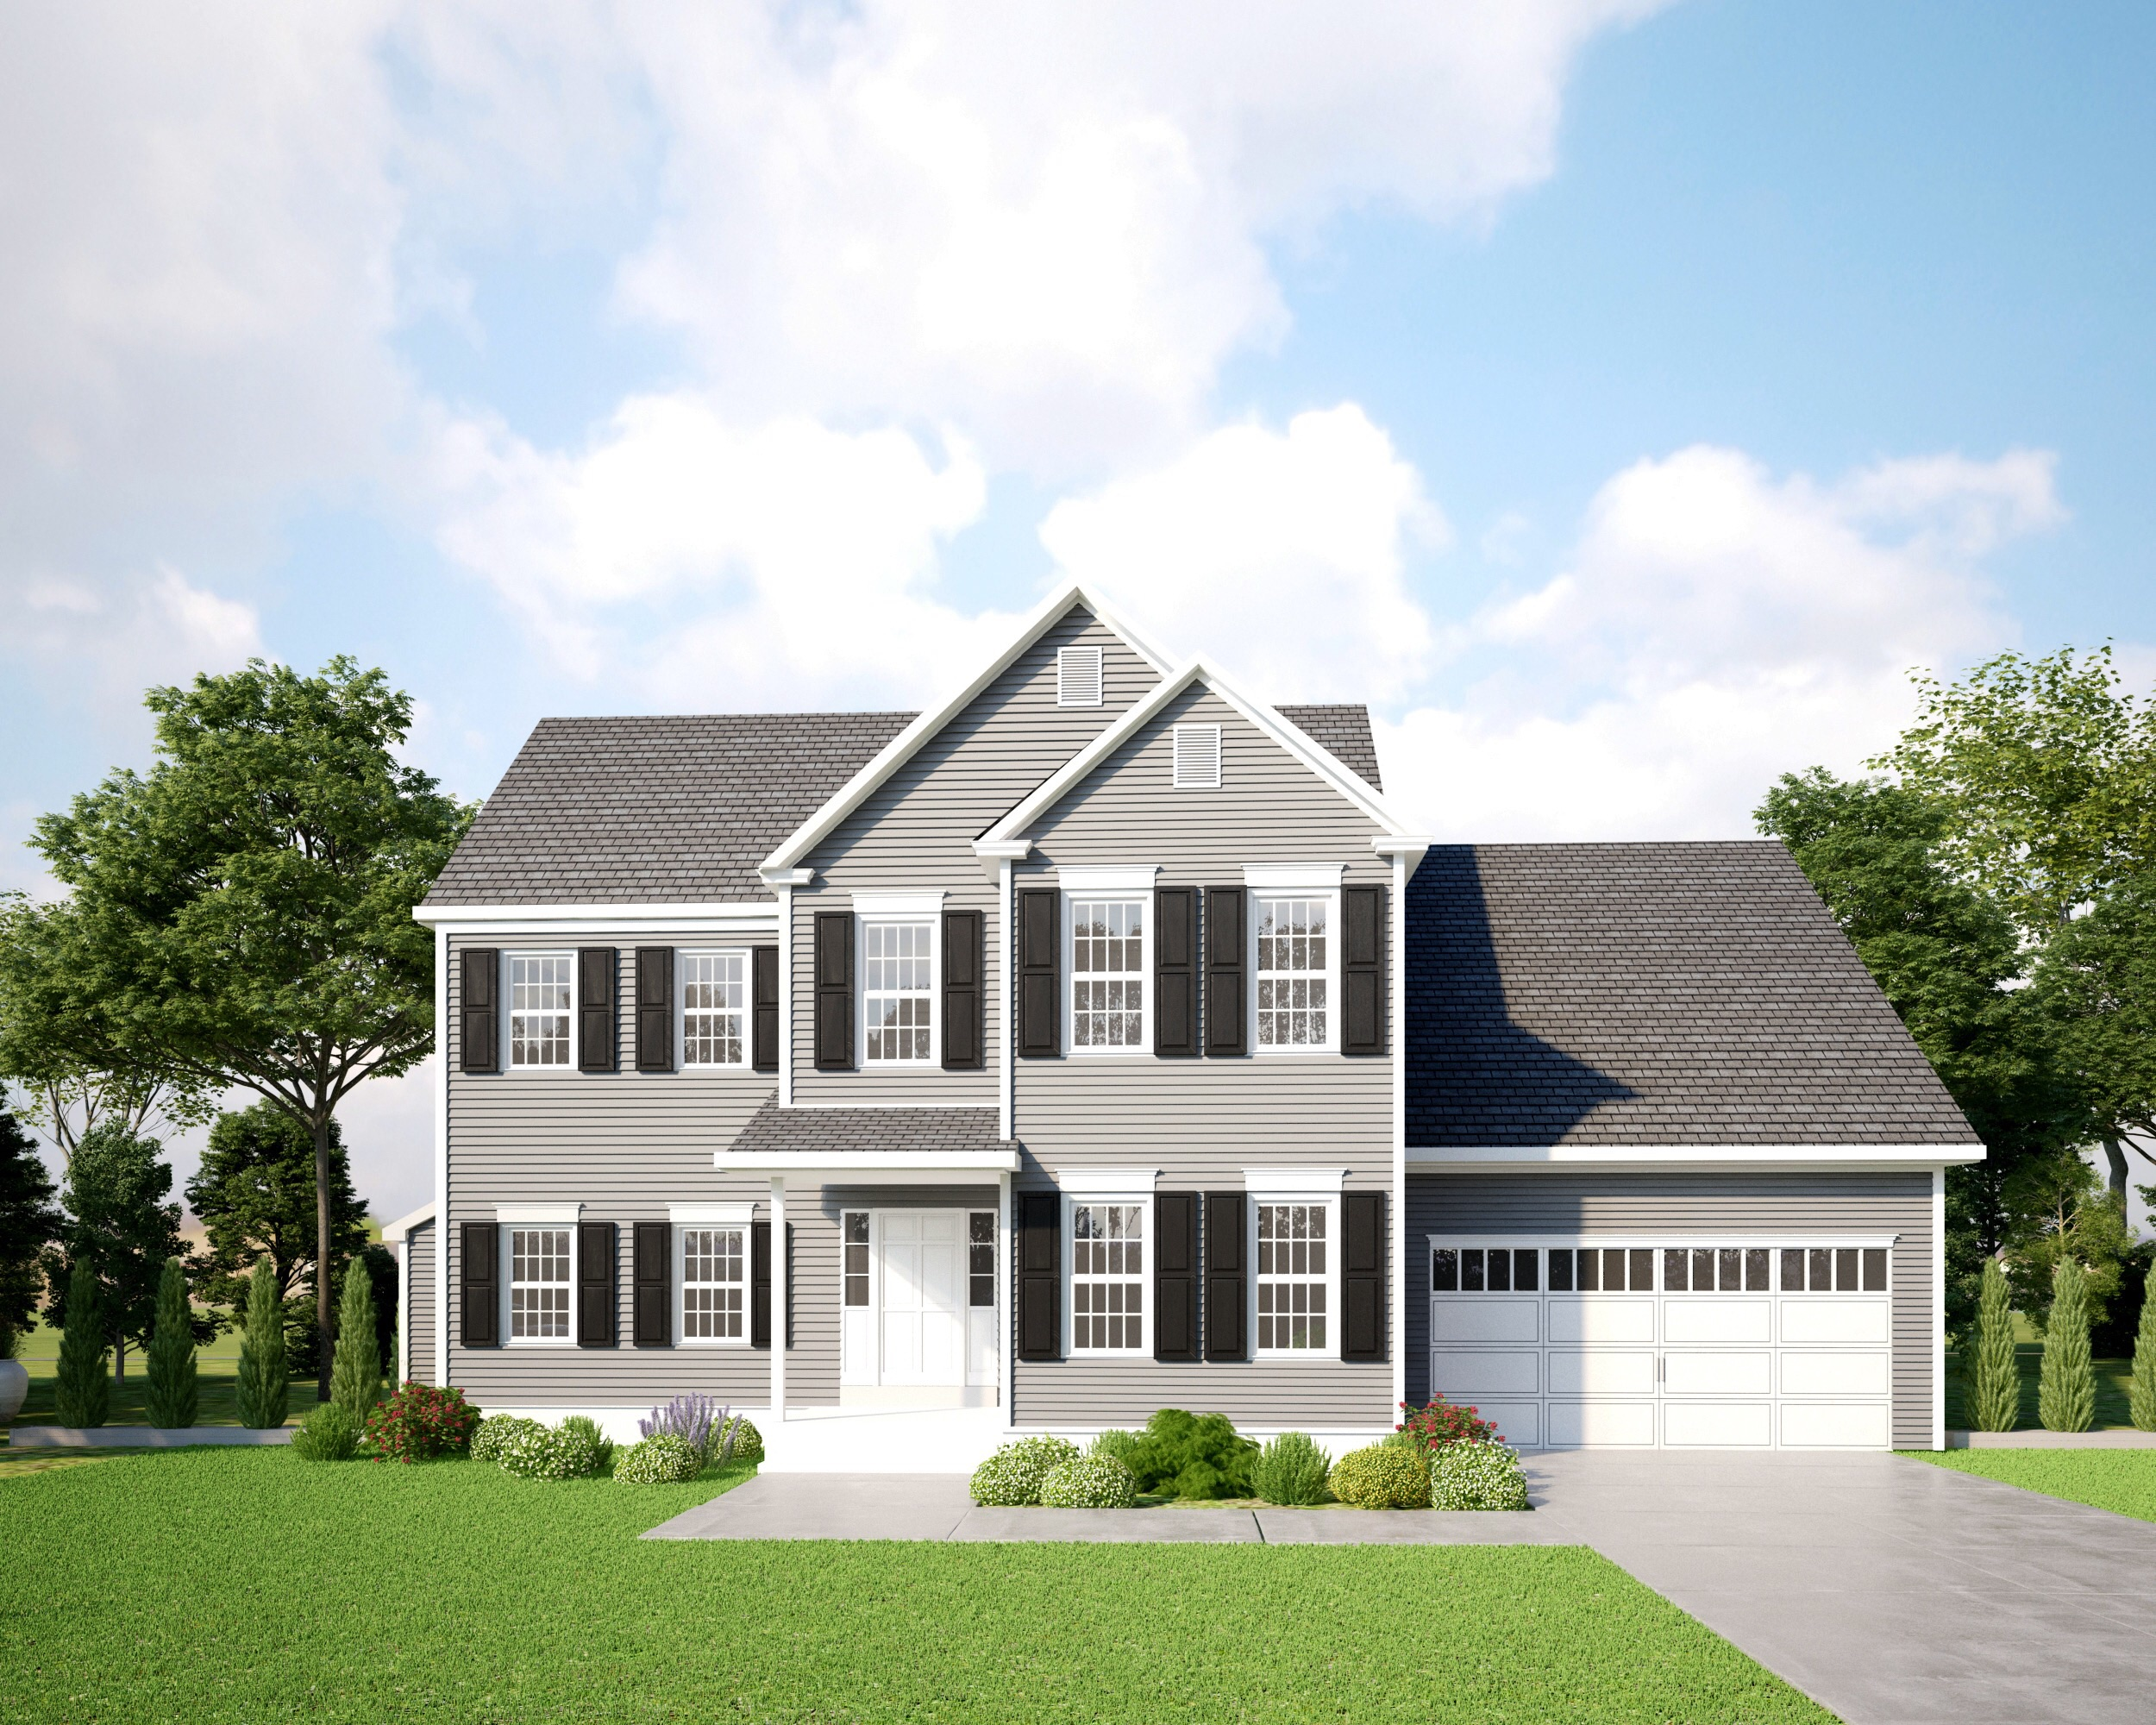 Engineered Exterior Photo of a Two-Story Home - Gray with Black Shutters